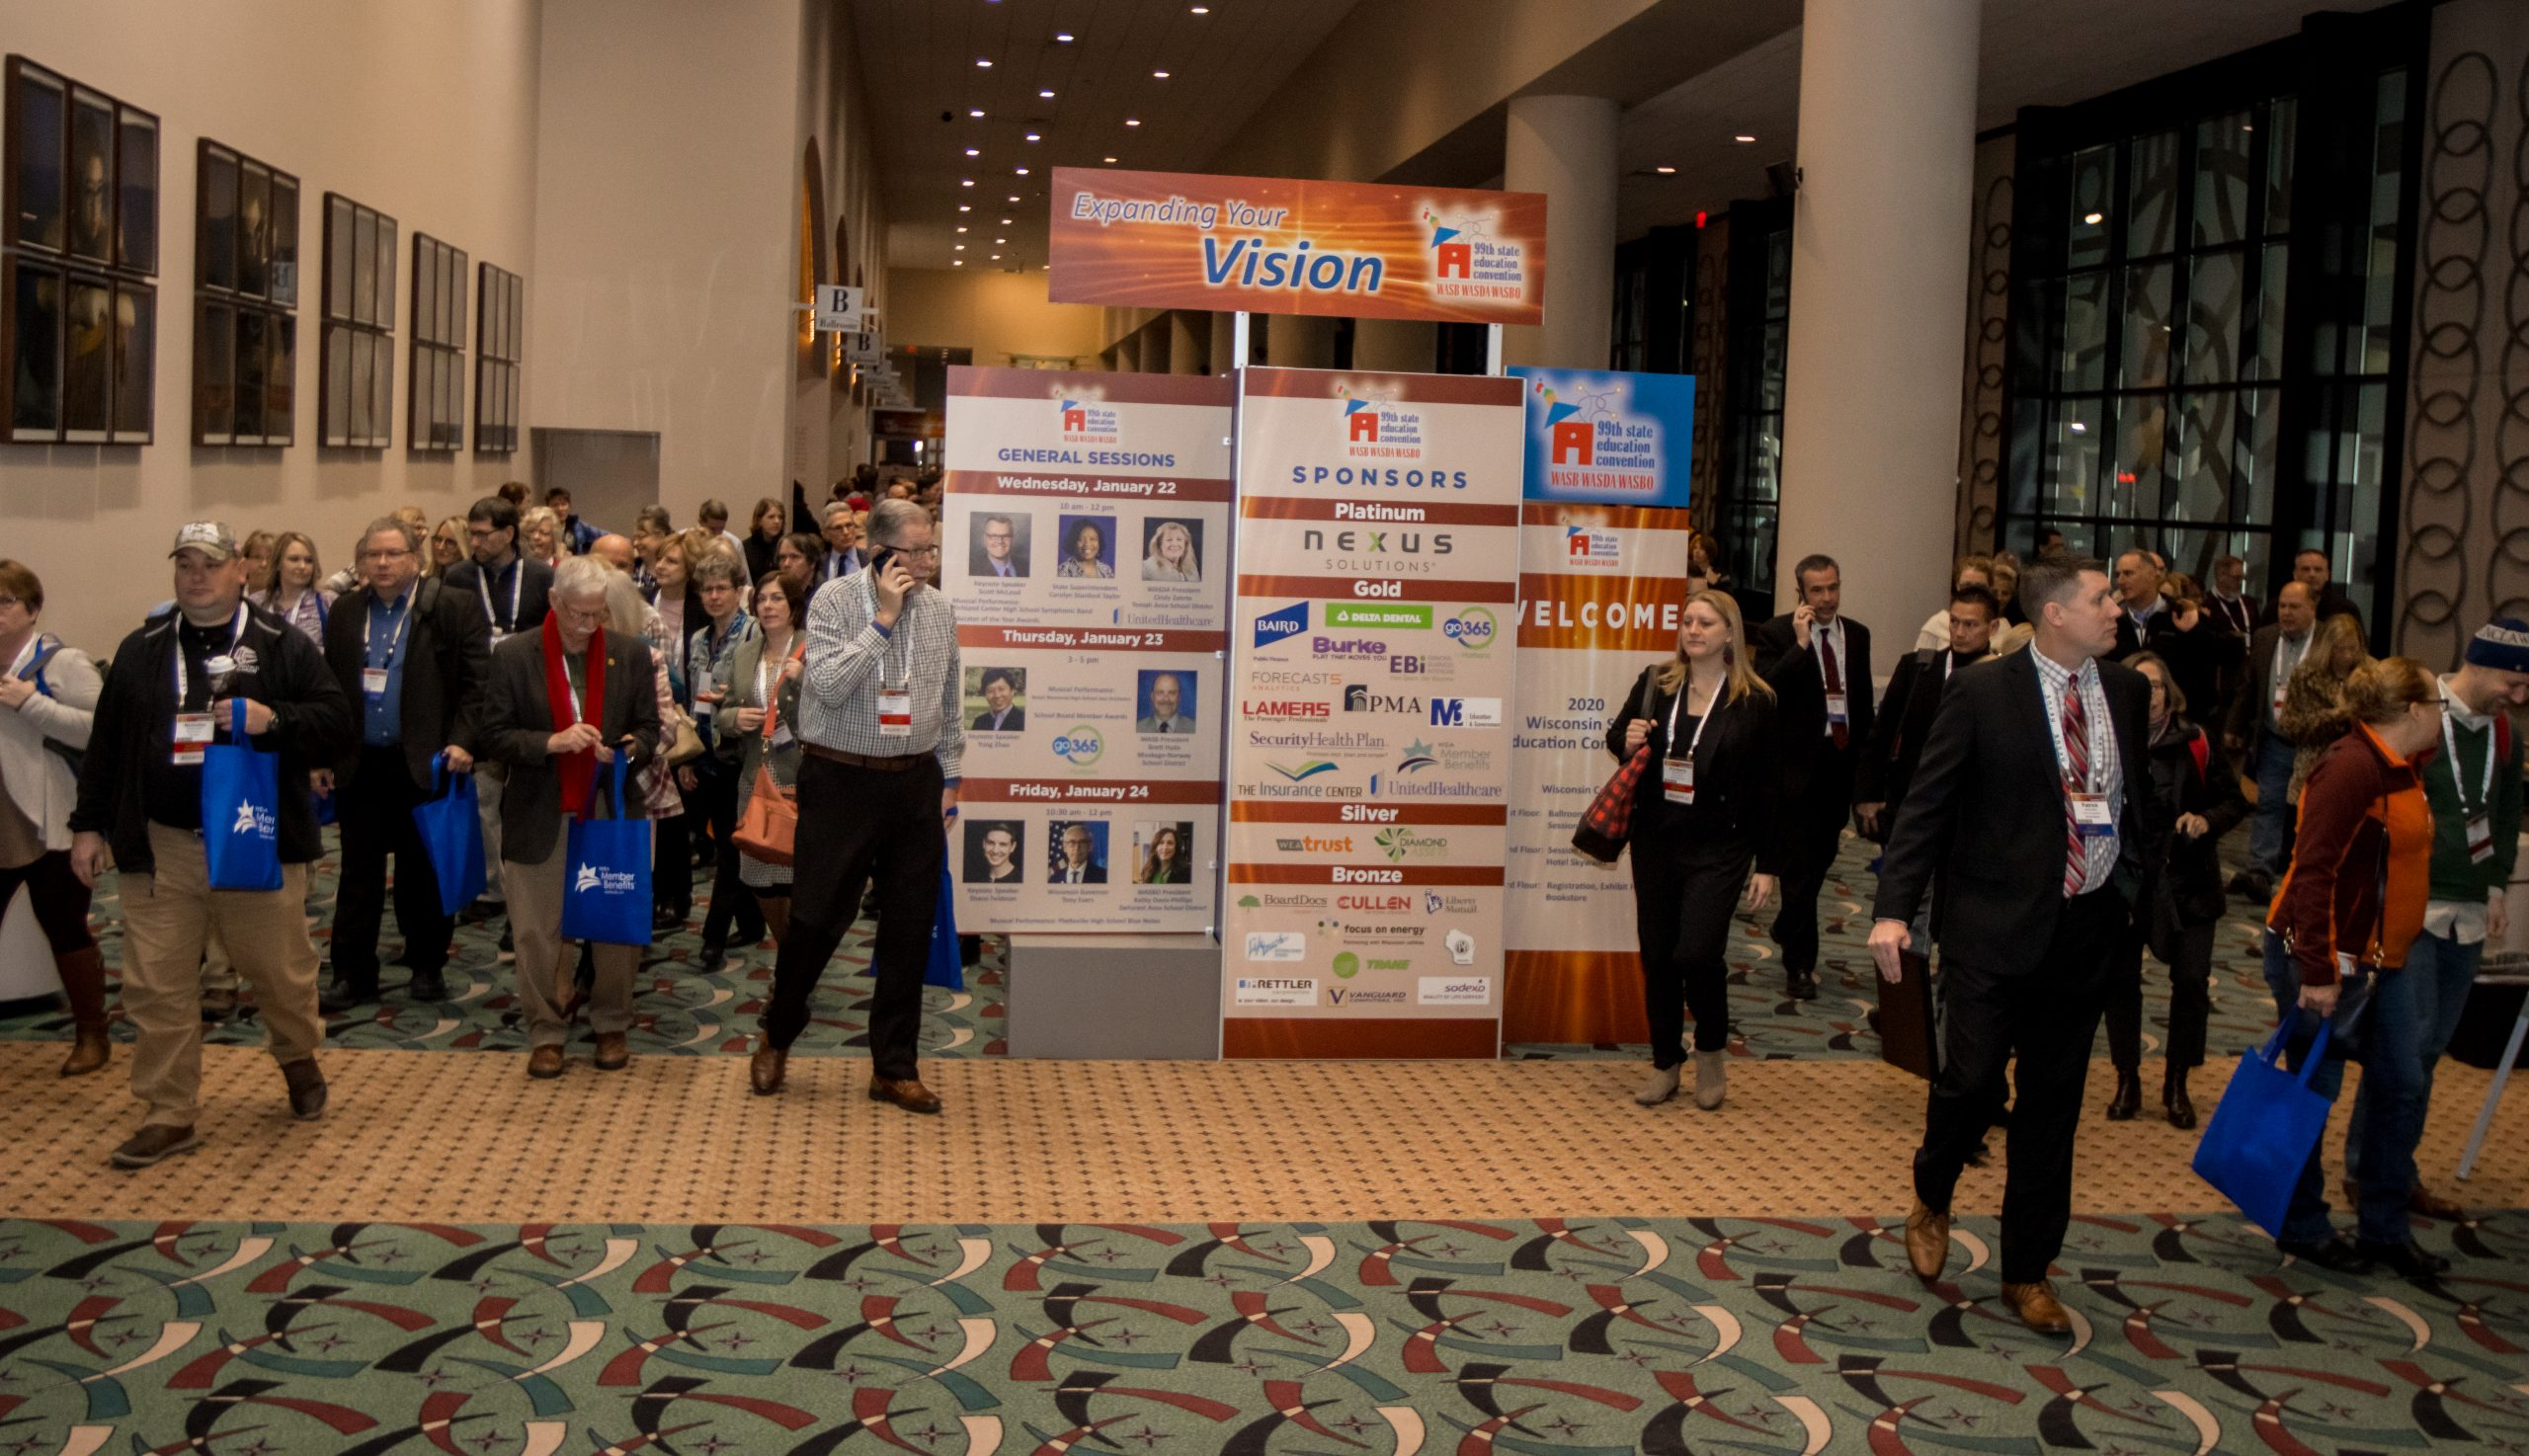 Attendees at the State Education Convention pass by a convention display.